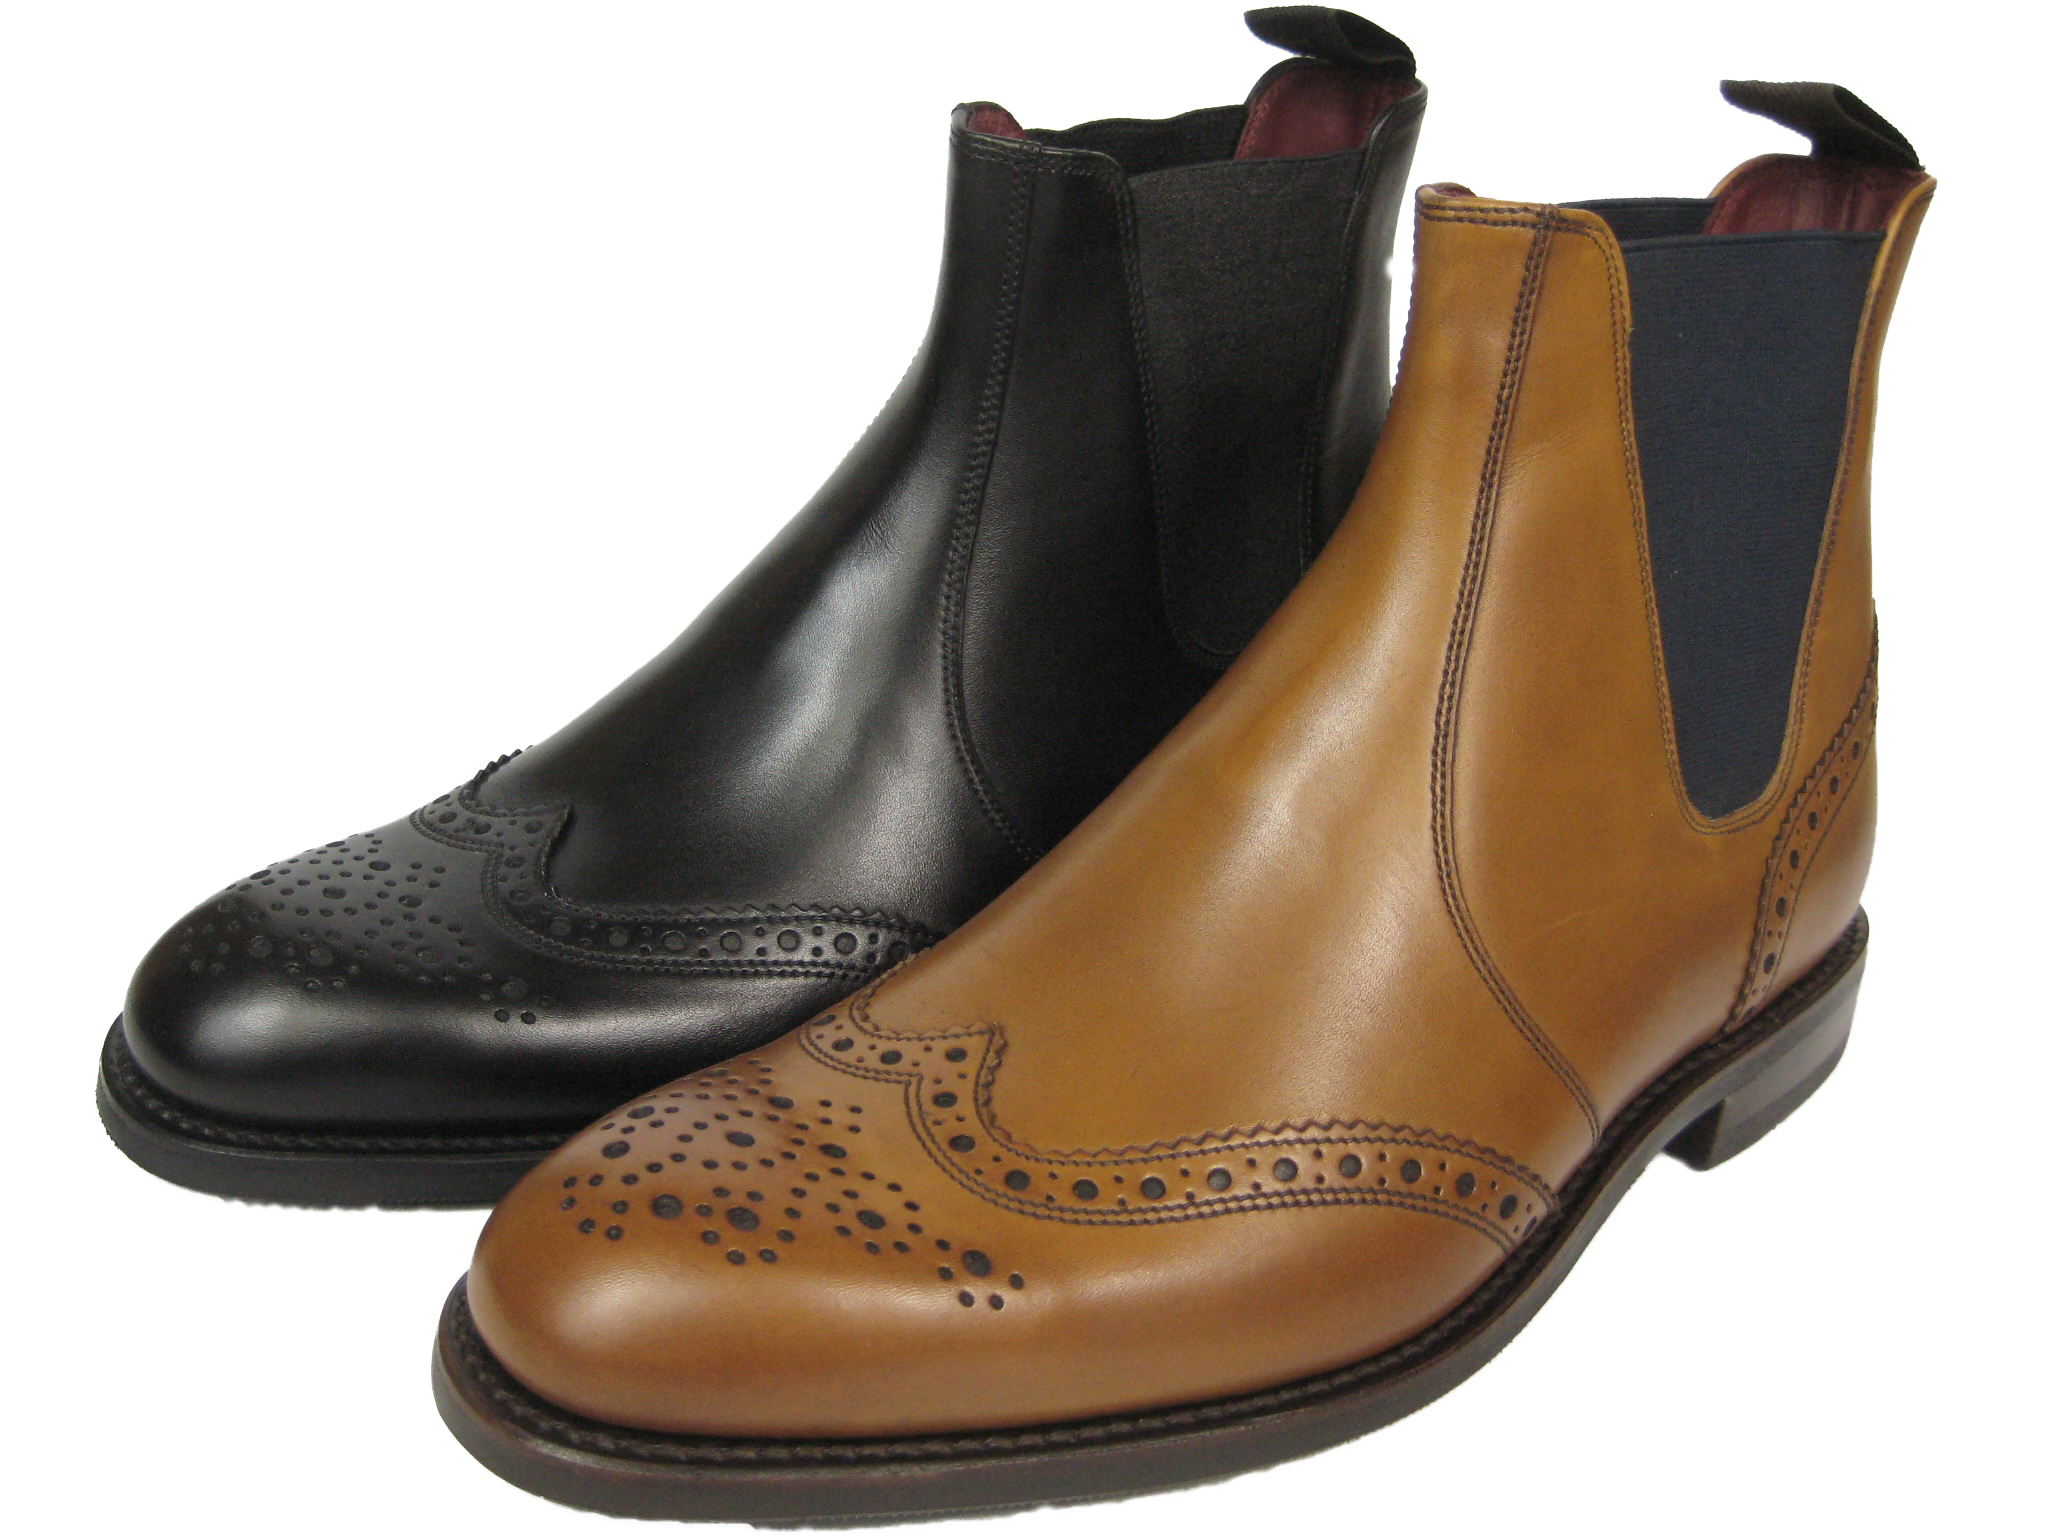 on sale 51e9f 9aa05 Details about Loake Hoskins Chelsea Budapest Brogue Boots Black & Tan  Whisky Braun